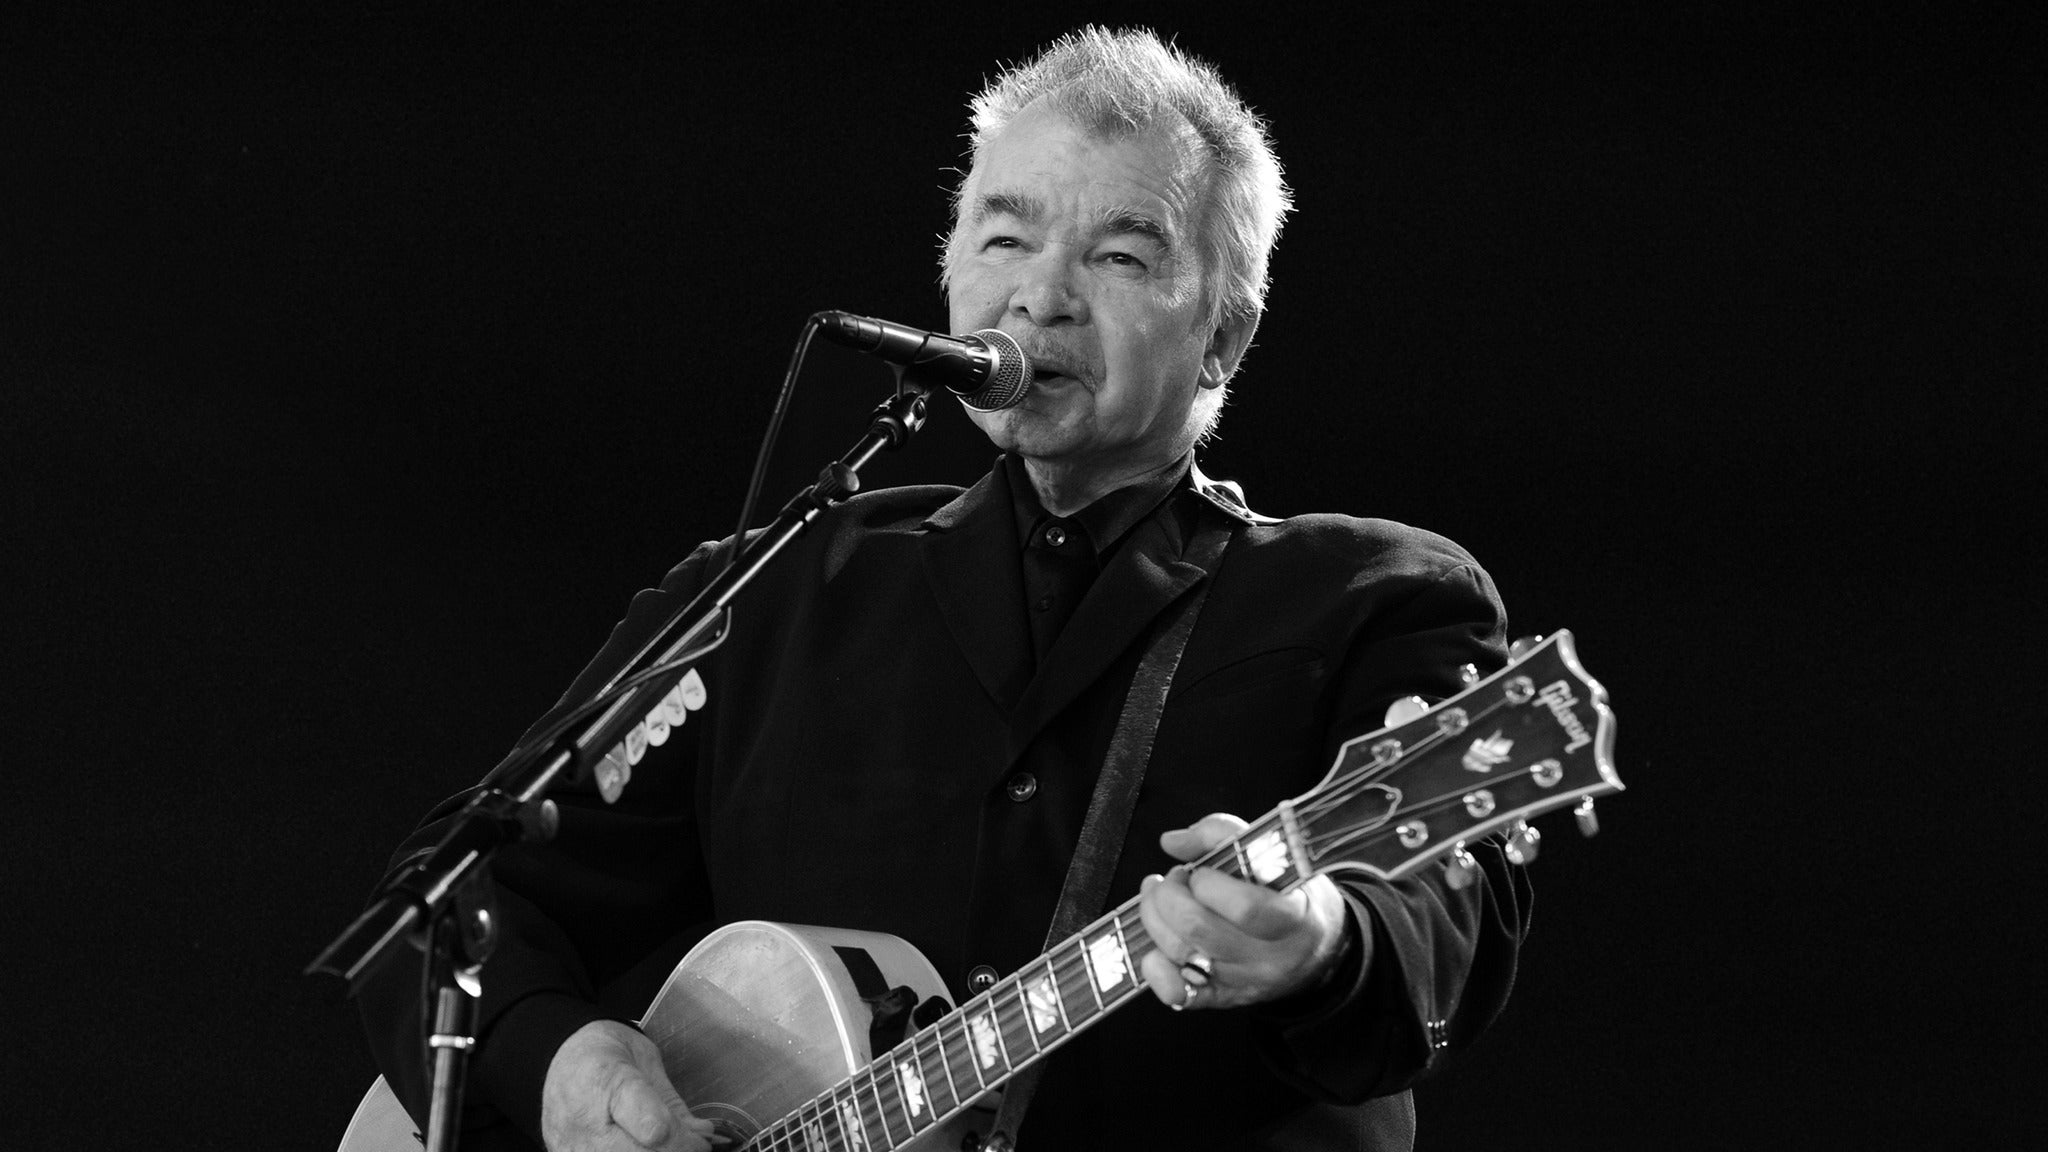 John Prine at Von Braun Center Concert Hall